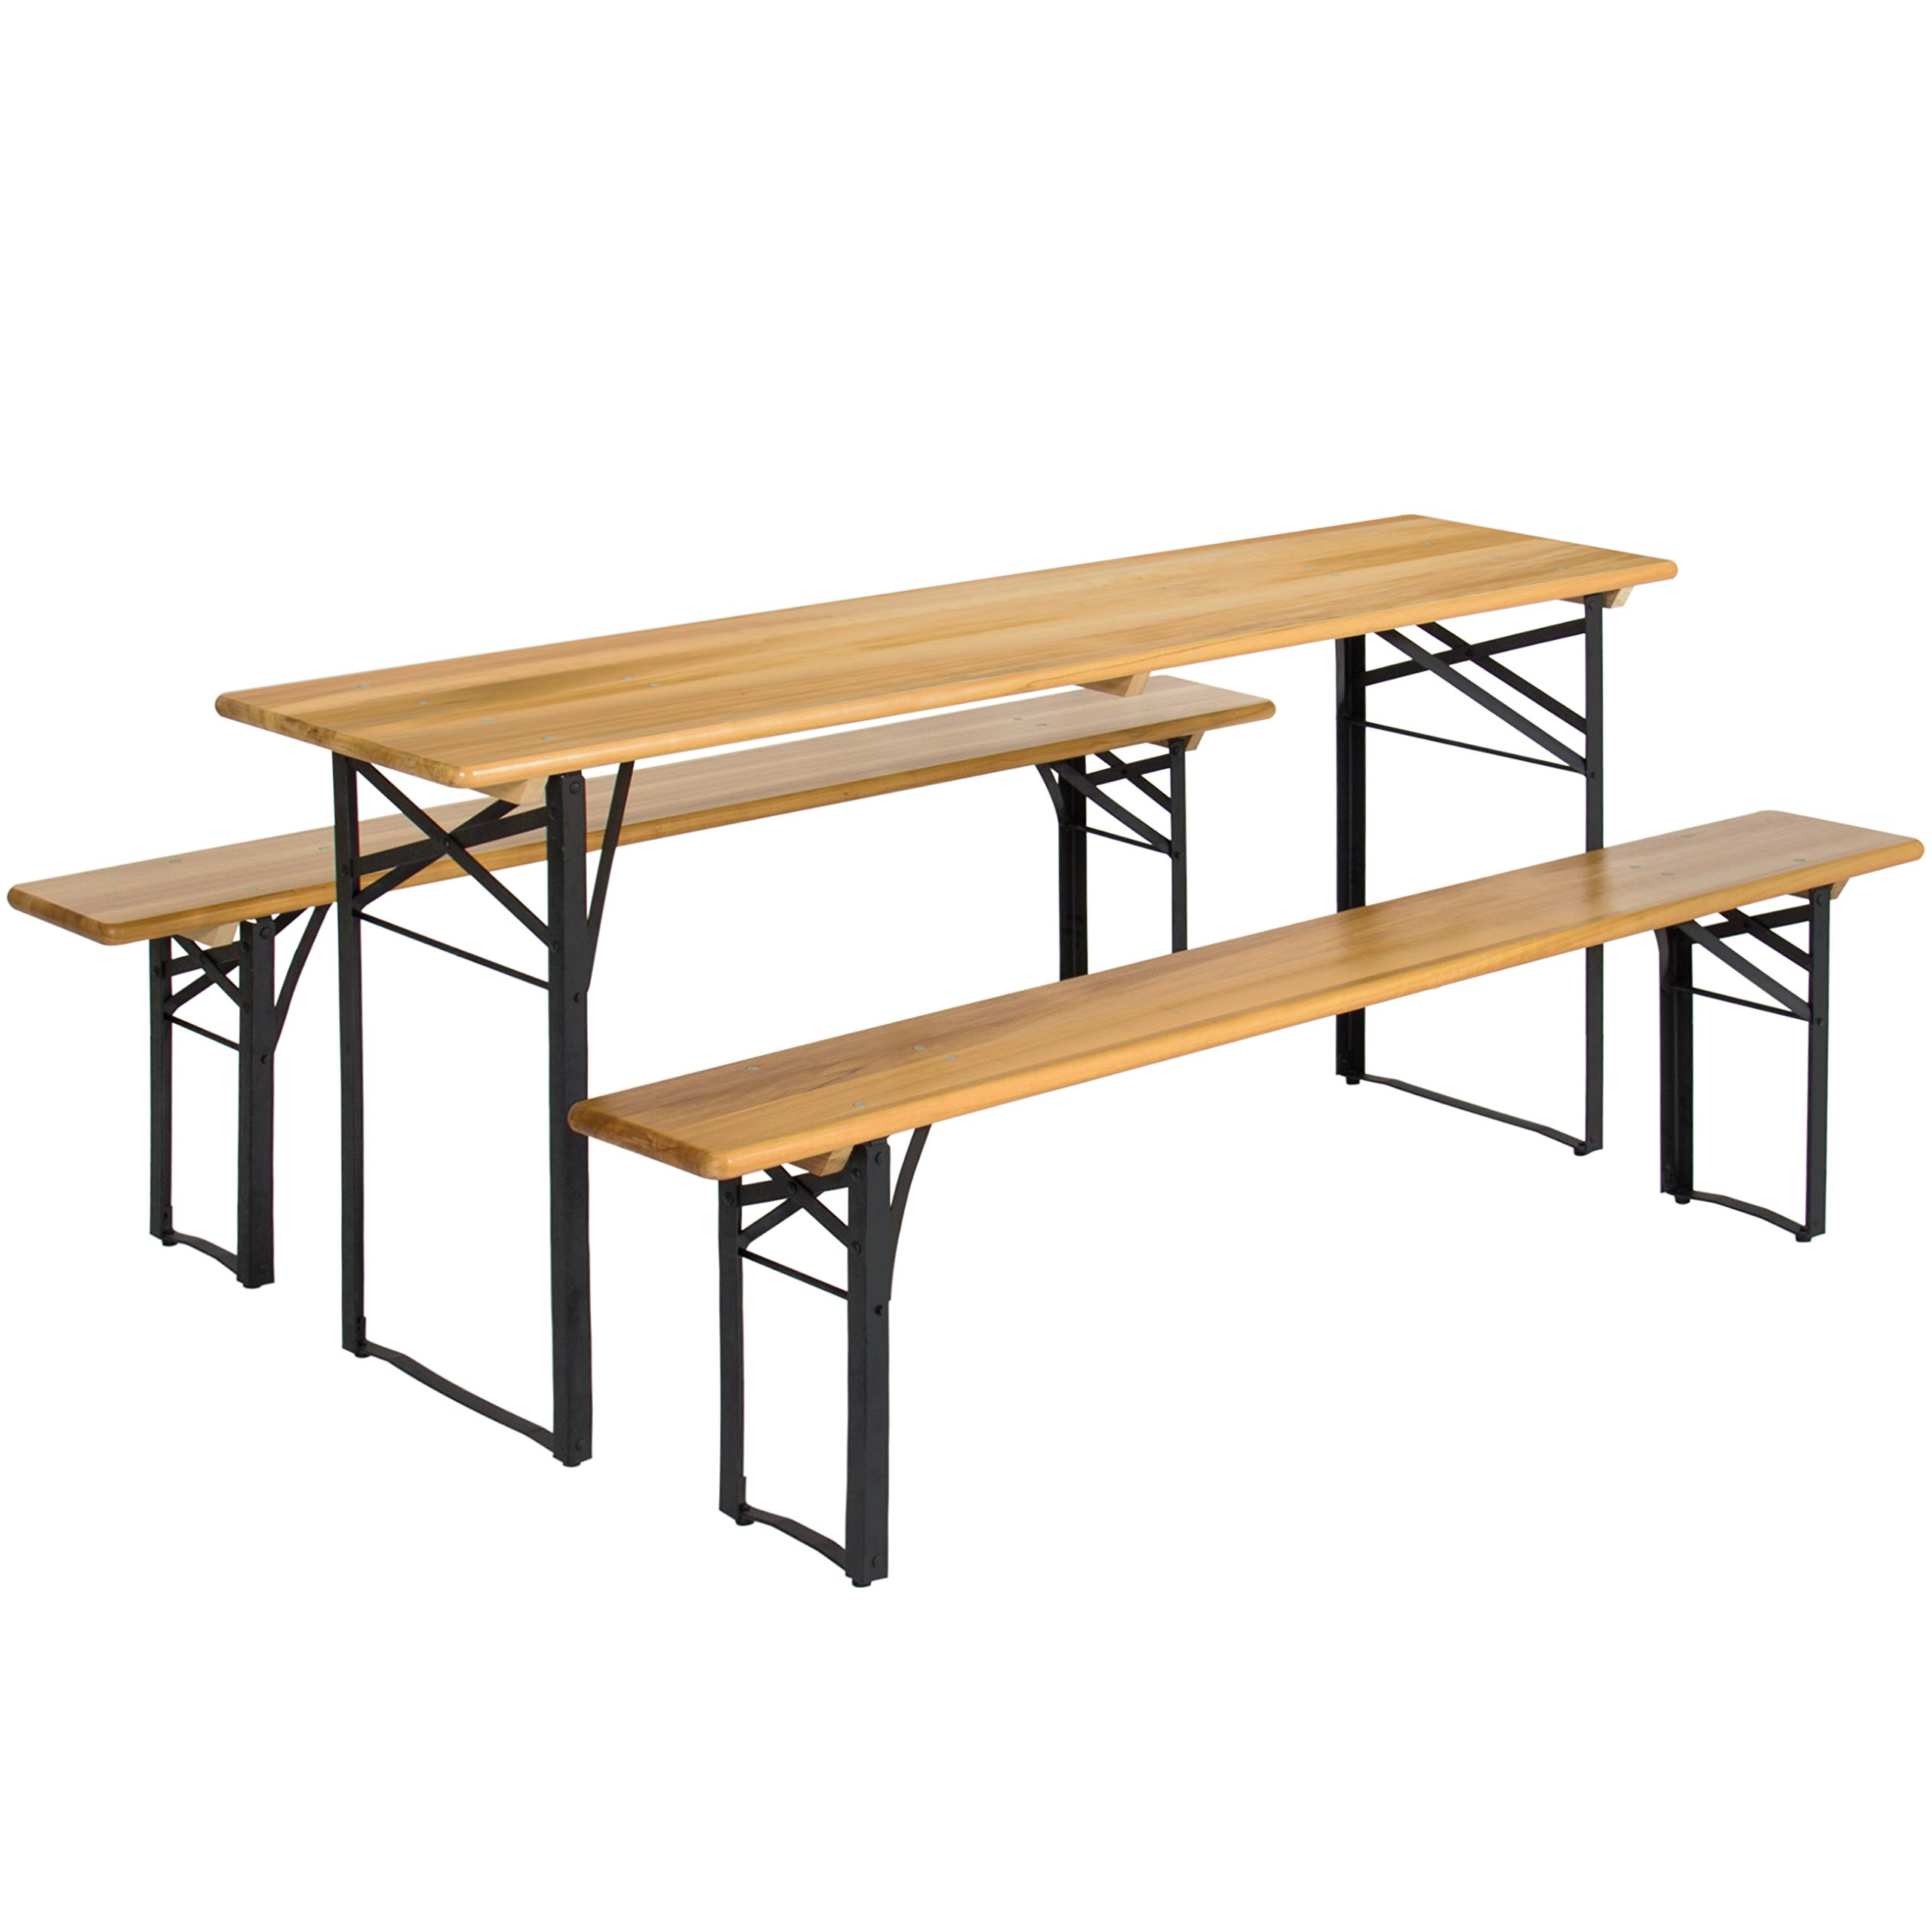 Best Choice Products Portable 3 Piece Folding Picnic Table Set W/ Wooden Tabletop by Best Choice Products